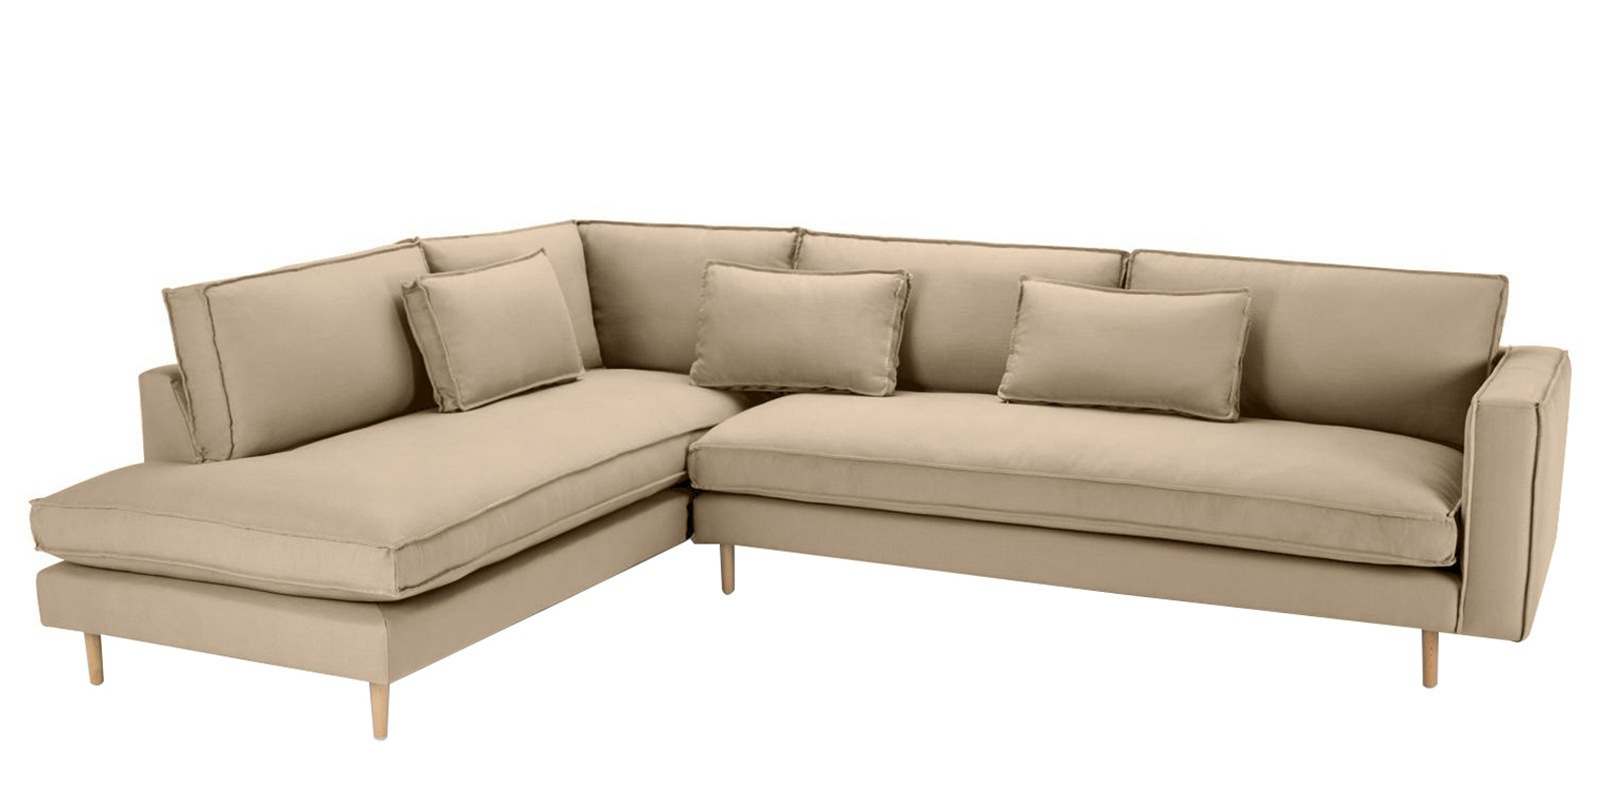 Well Known Dream Navy 3 Piece Modular Sofas Intended For Modular Lhs Three Seater Sofa With Lounger In Beige Colour (View 18 of 20)